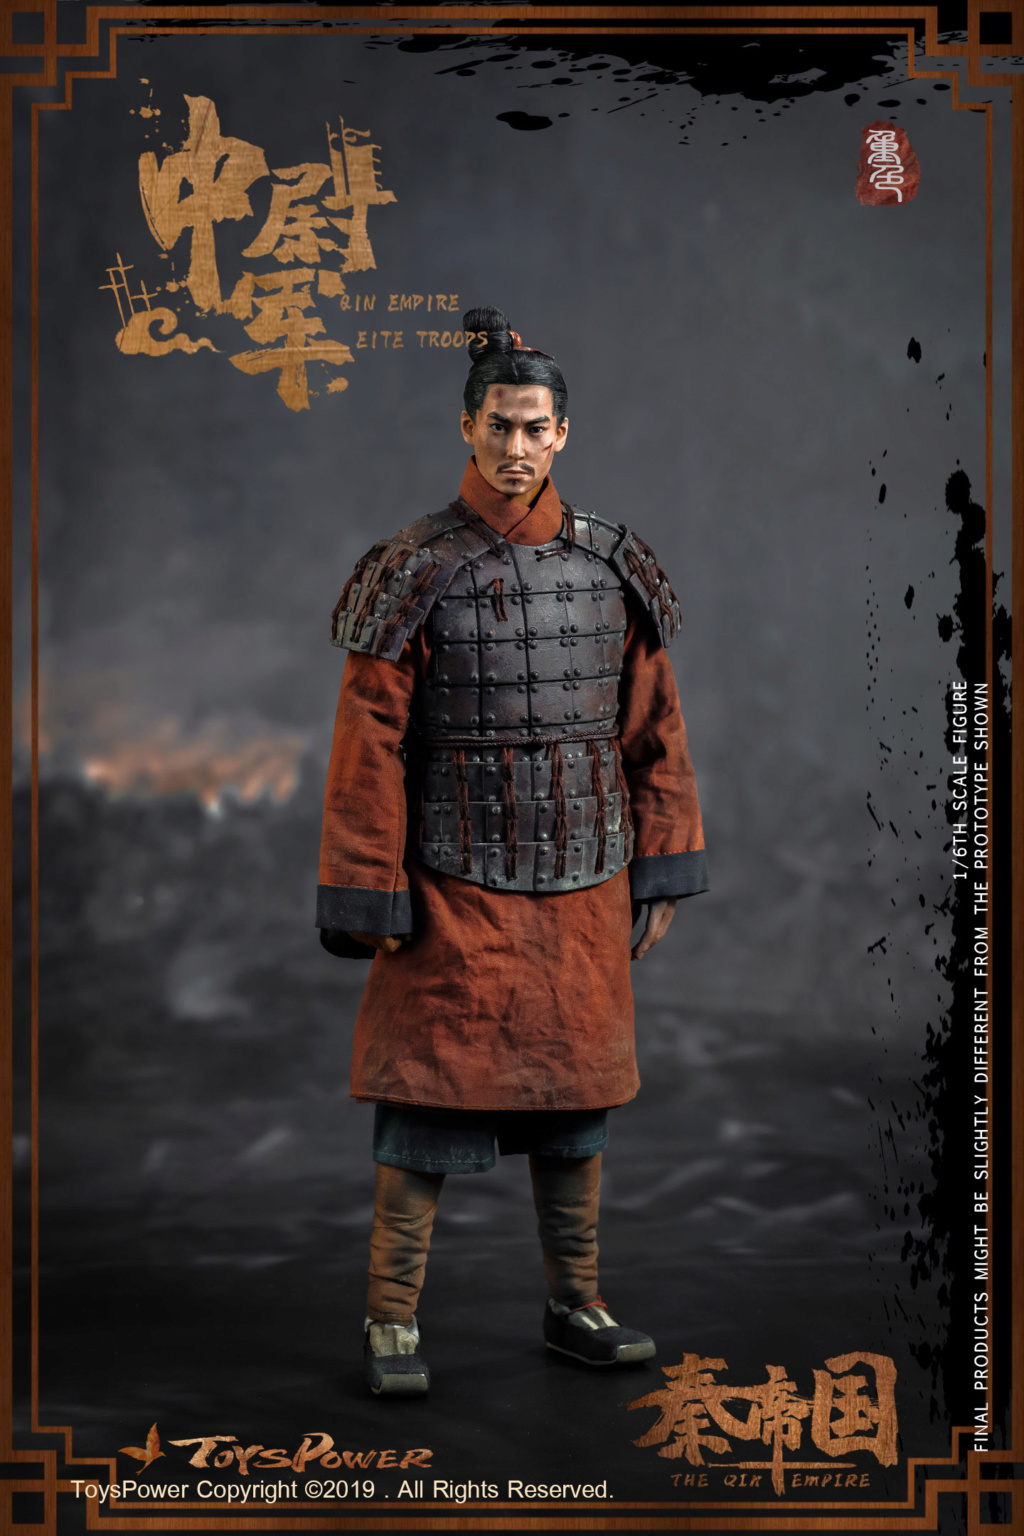 Army - NEW PRODUCT: Toyspower: 1/6 Qin Empire Lieutenant Army (Terracotta Warriors) movable doll CT012# (update armor piece drawing) 17412710